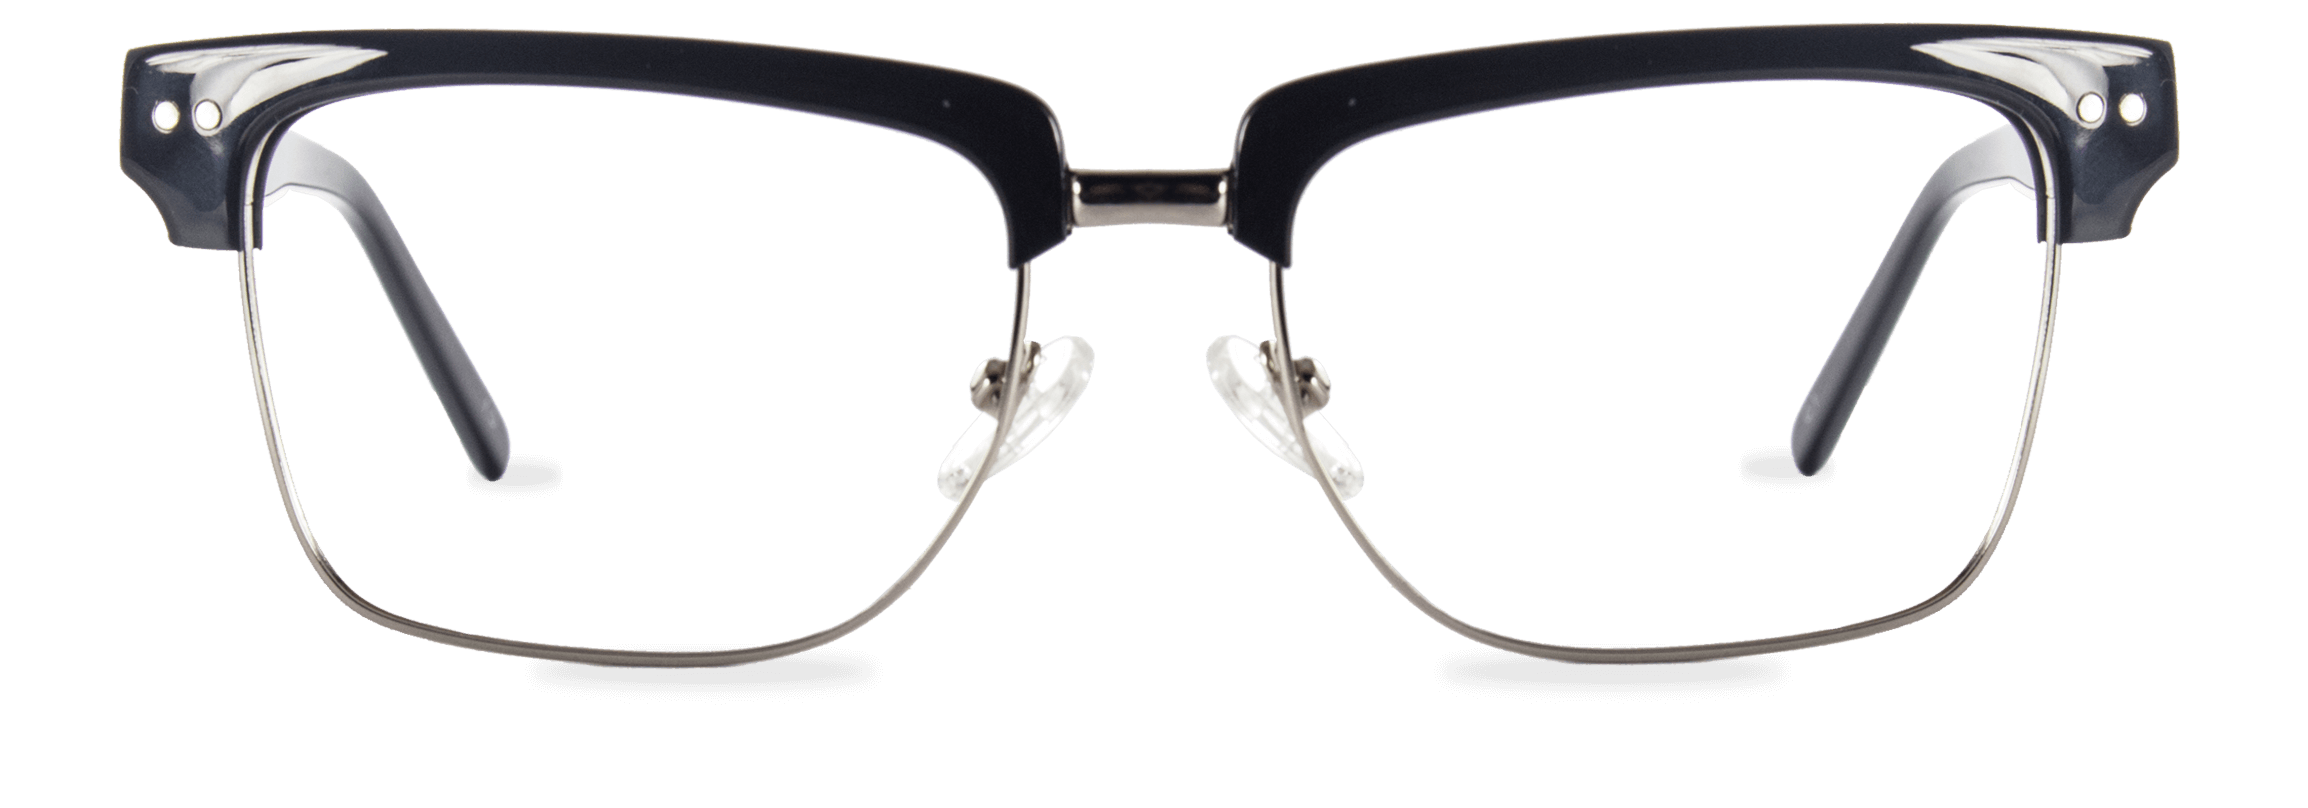 Lentes Png (107+ images in Collection) Page 1.